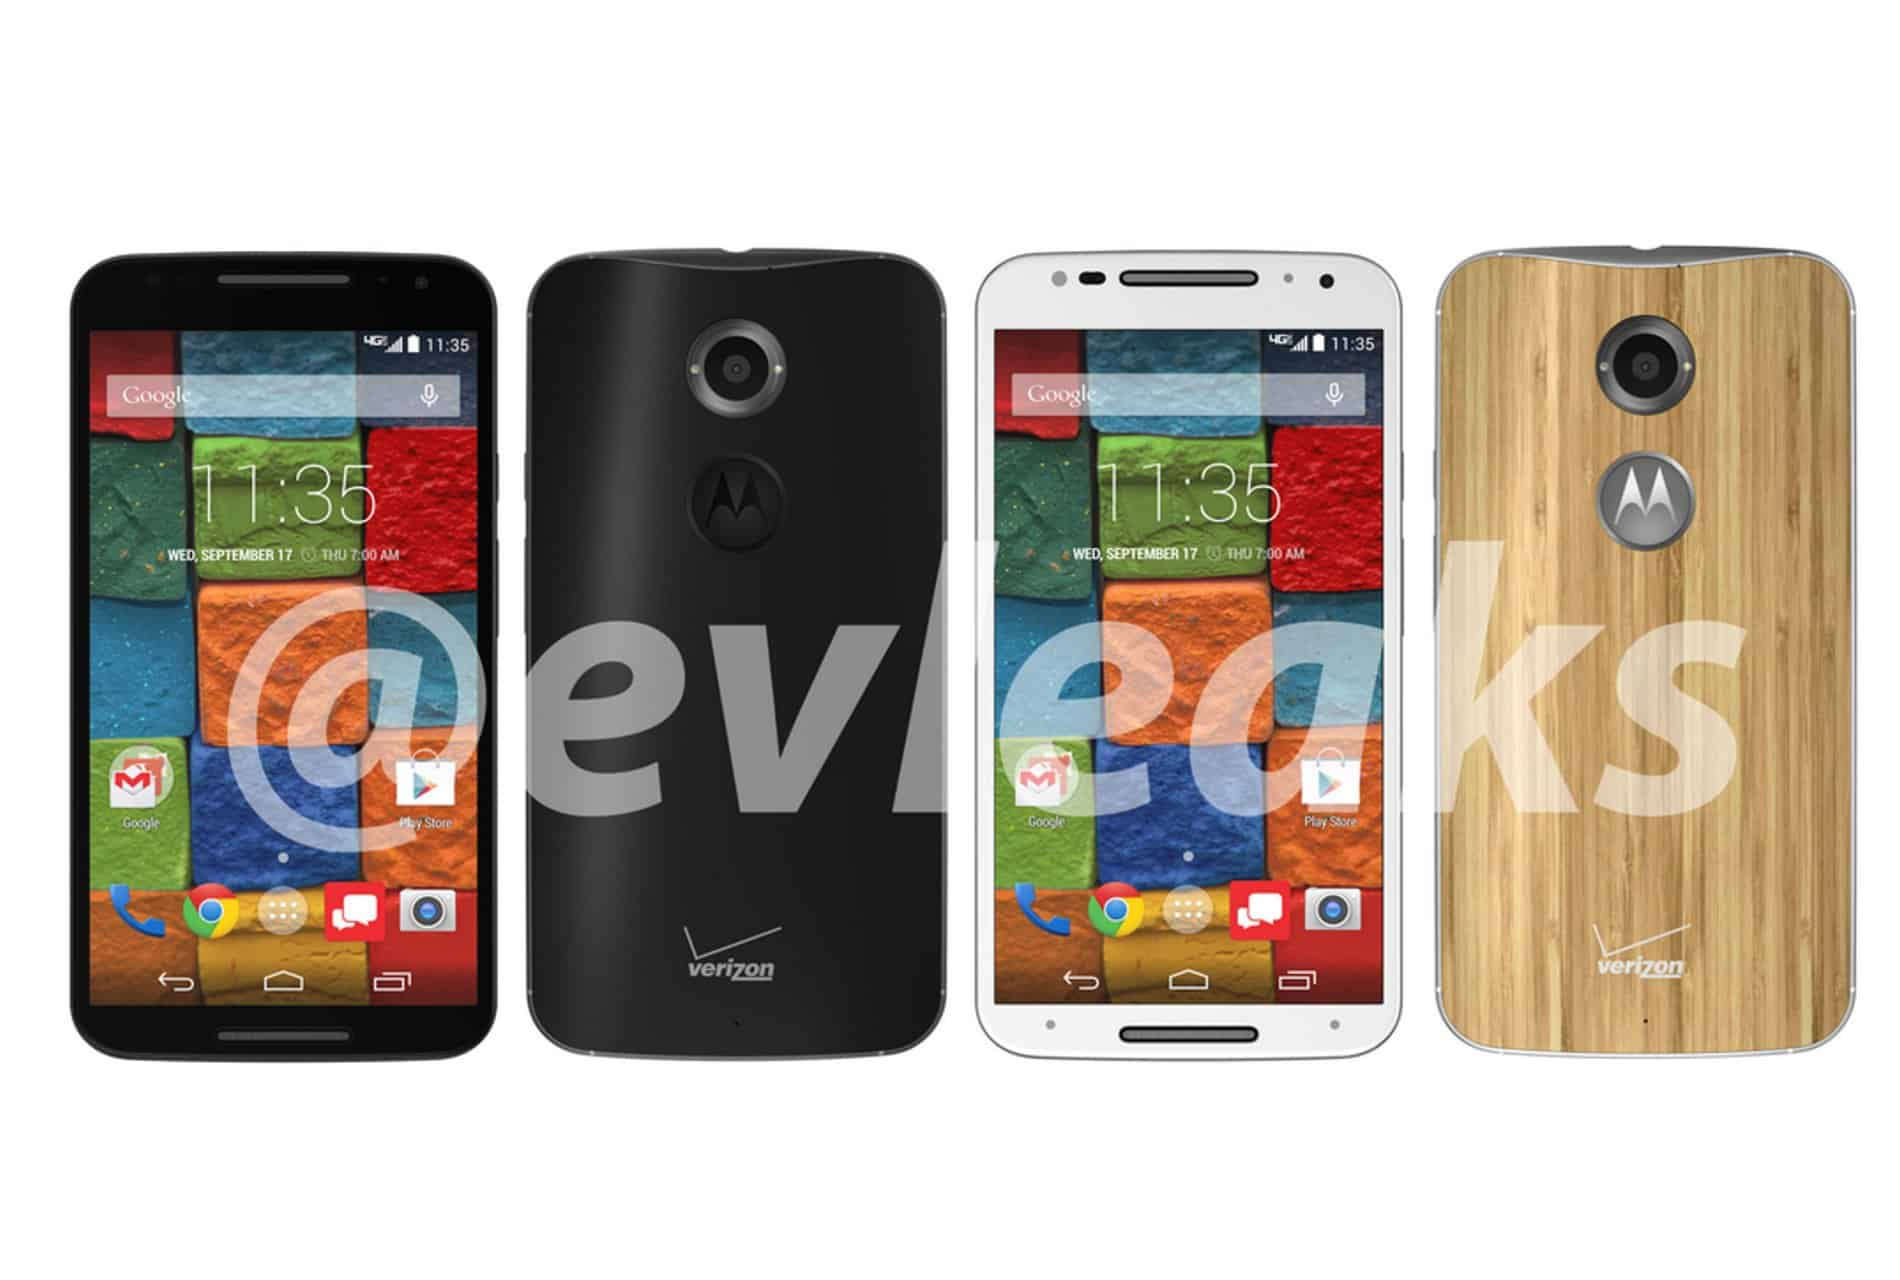 Motorola New Moto X X+1 Leak Press Render